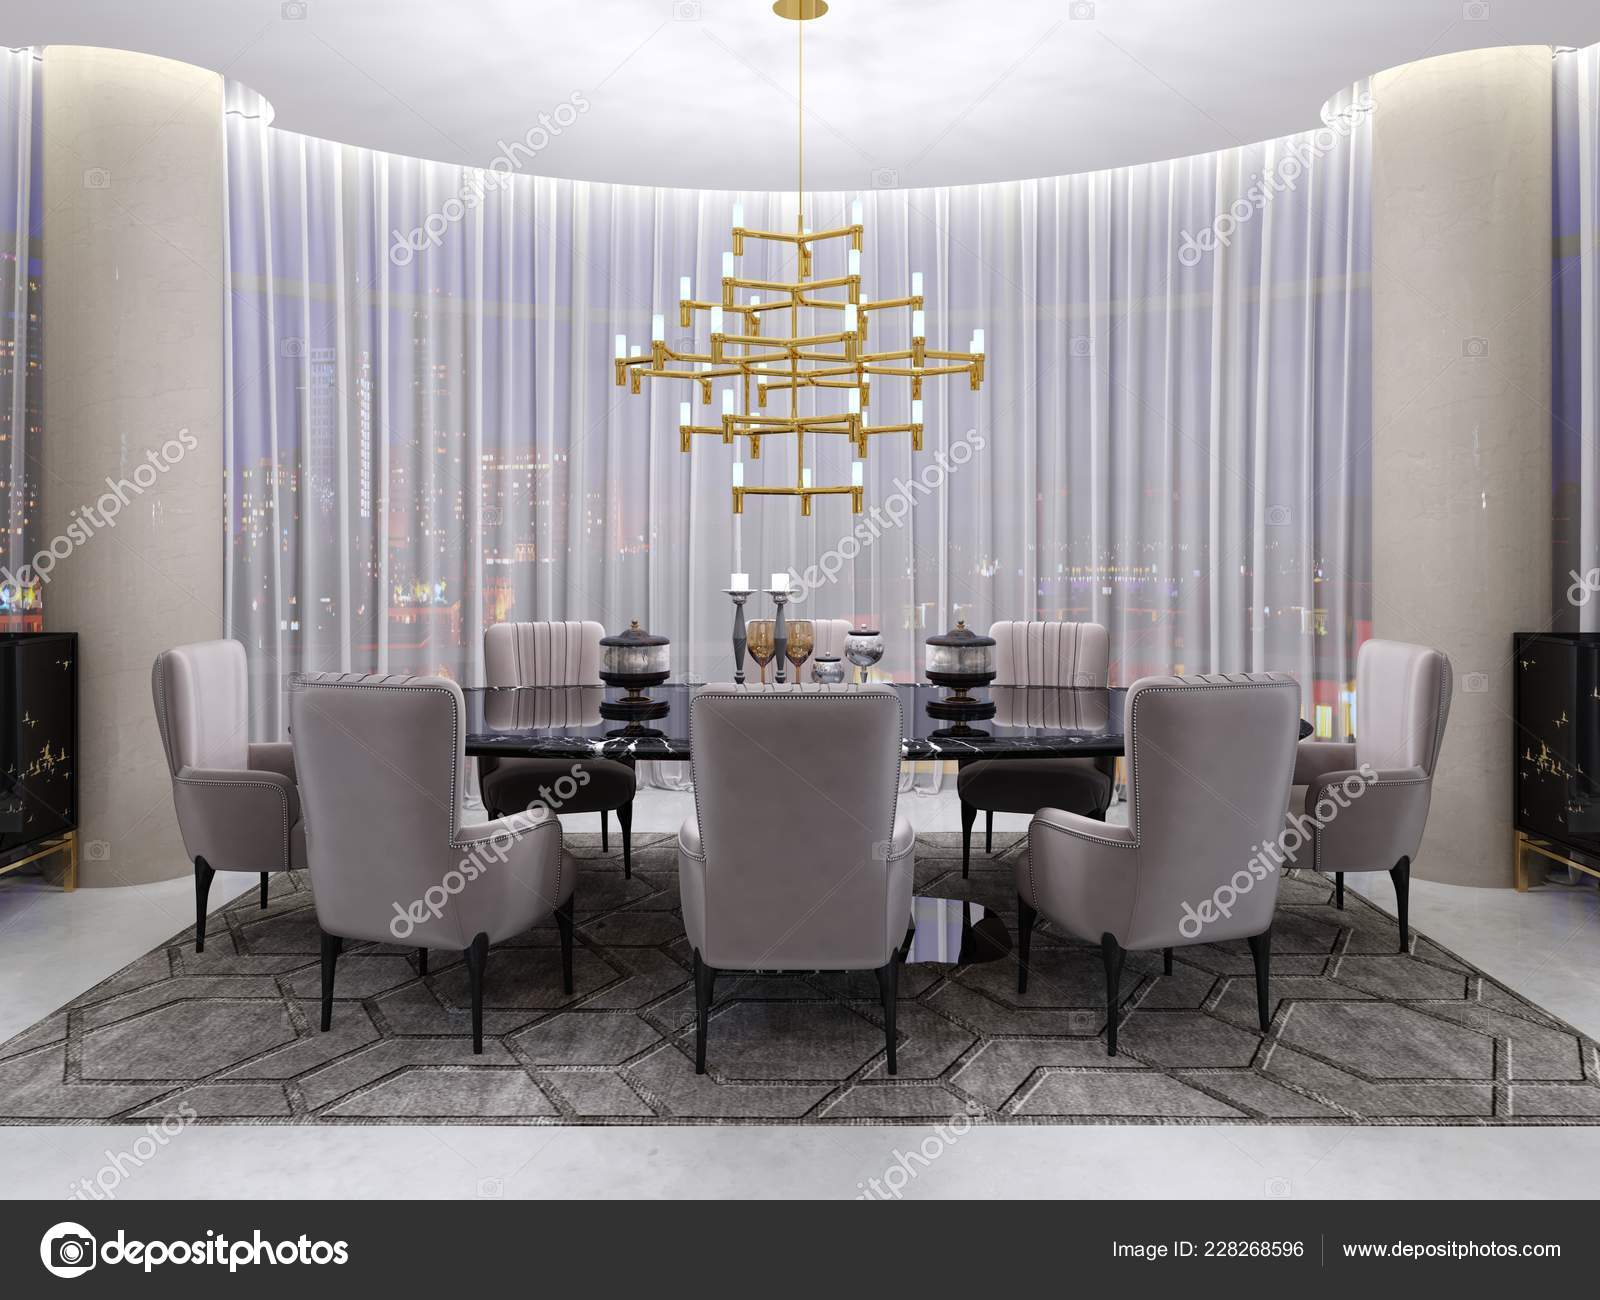 Large Dining Table Hotel Eight People Black Table Glass Tabletop Stock Photo C Kuprin33 228268596